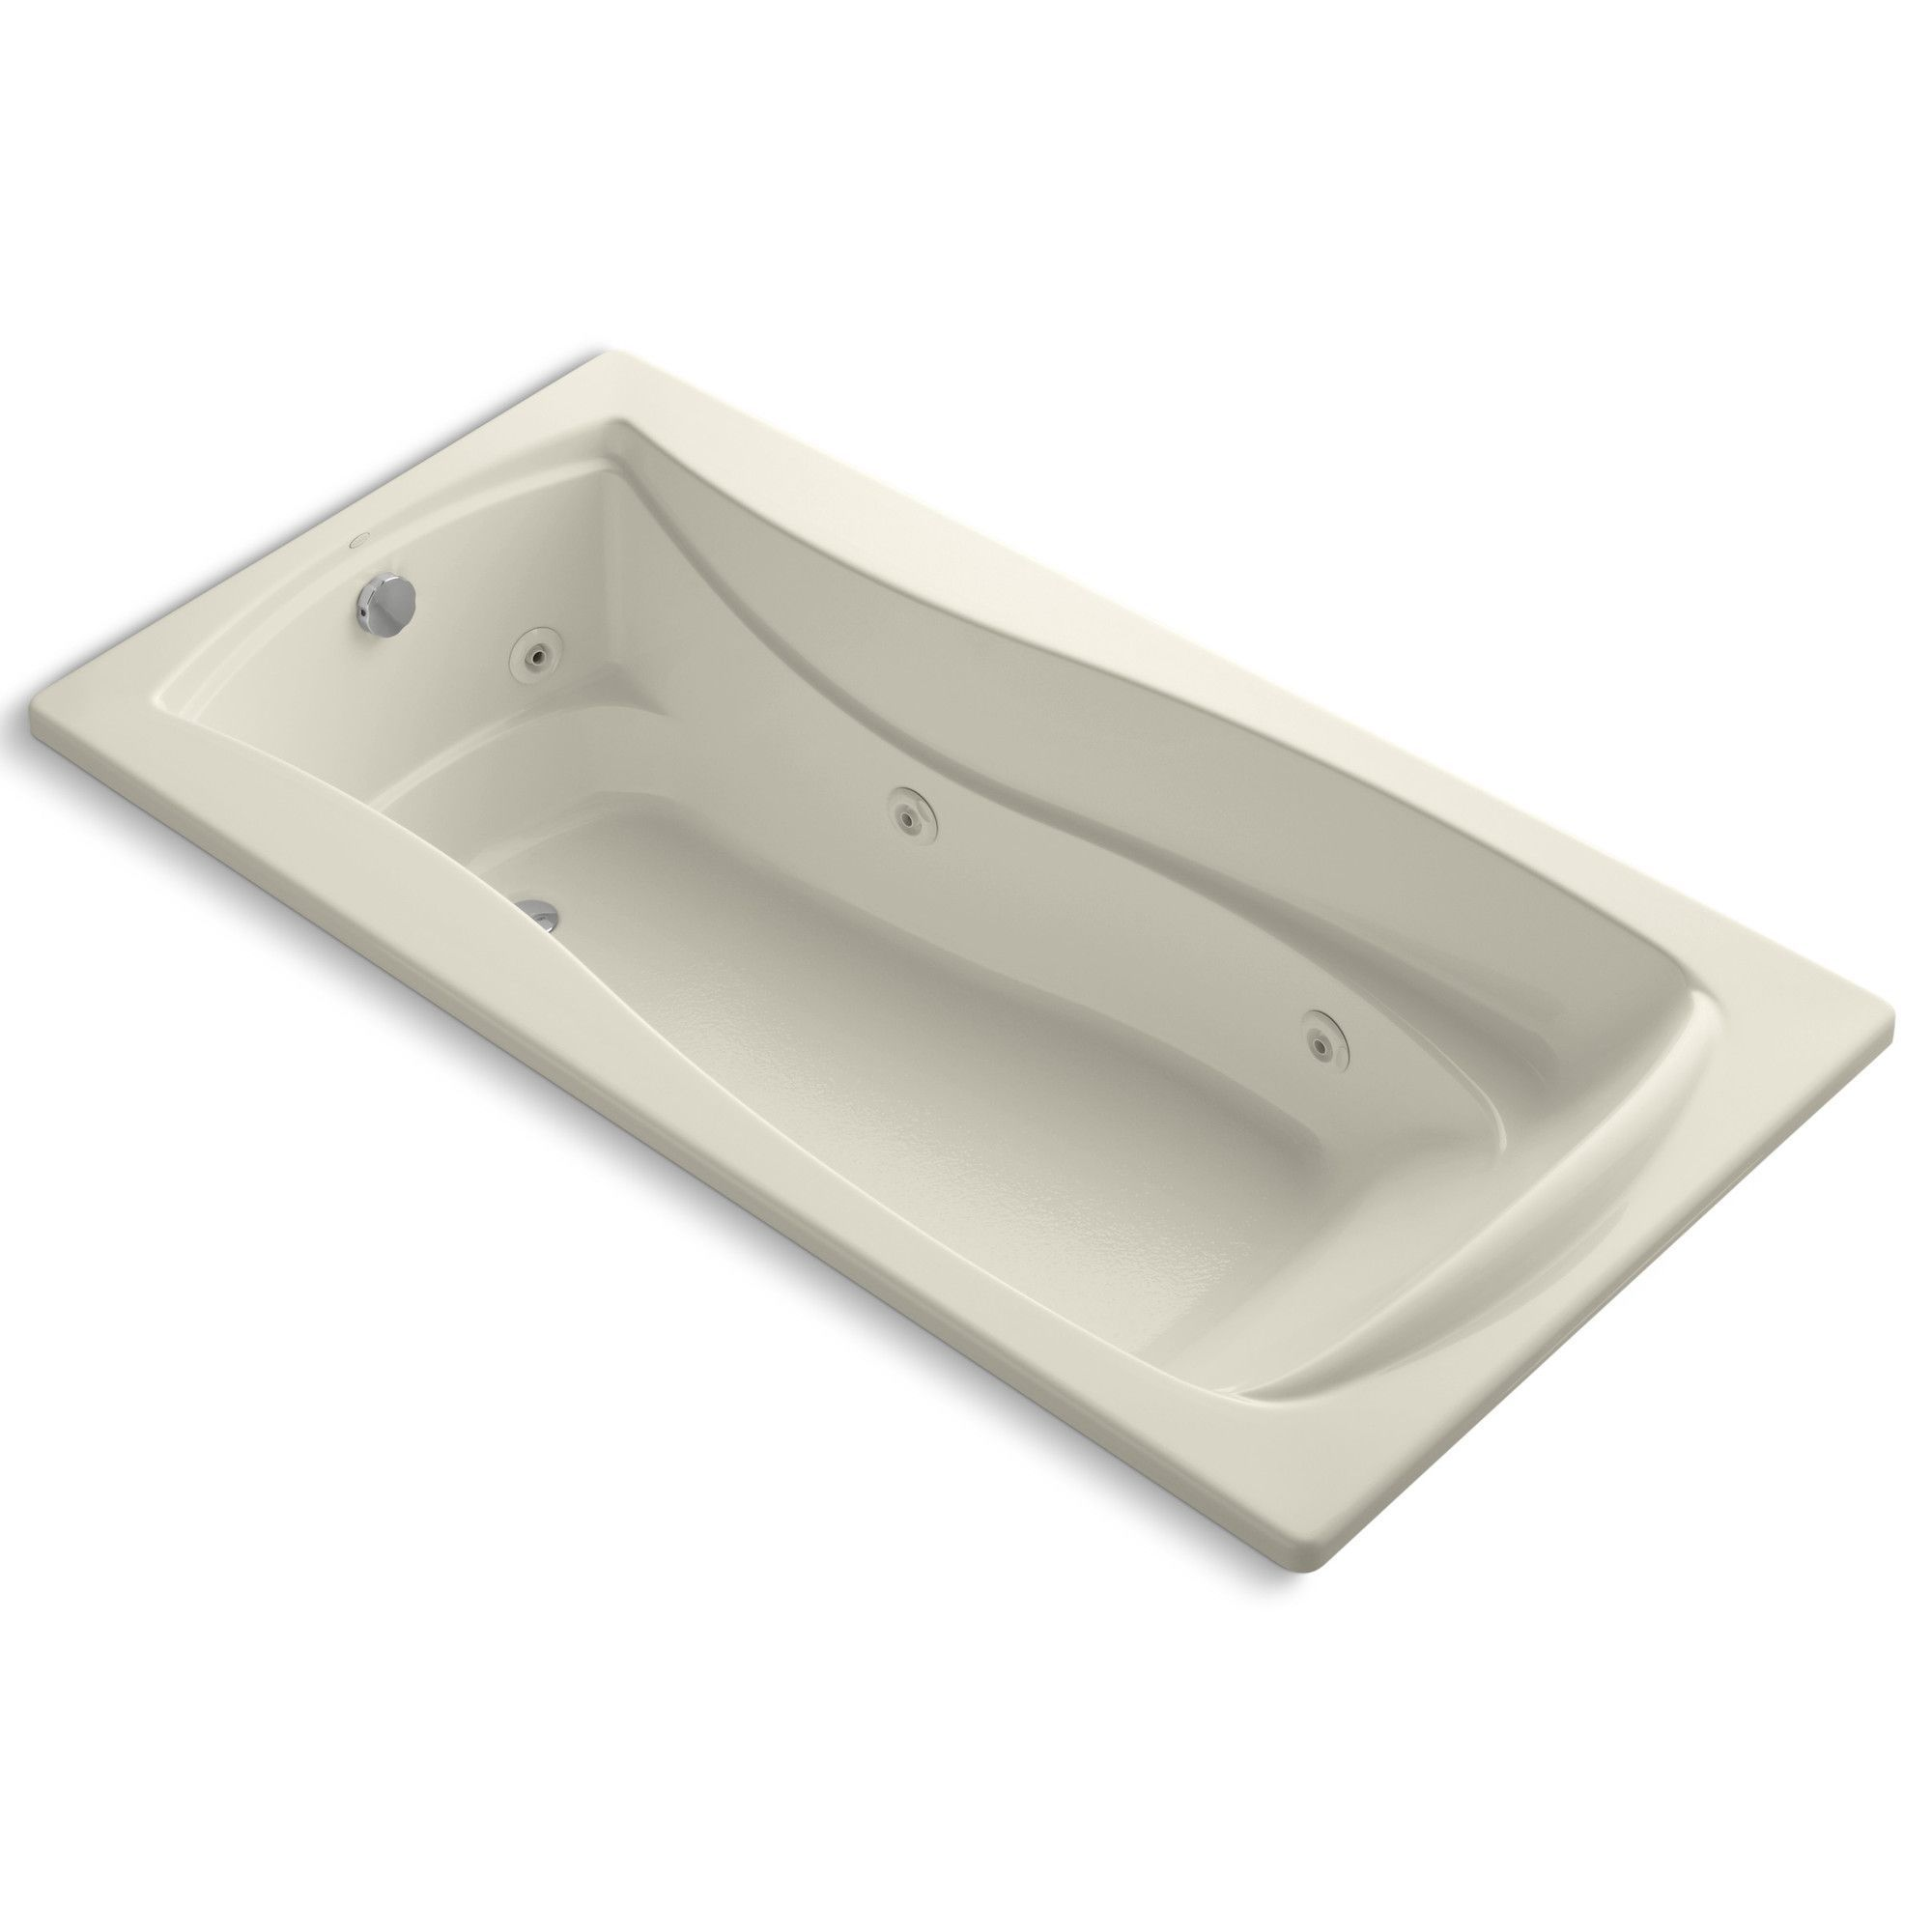 Mariposa 72 X 36 Whirlpool Bathtub Whirlpool Bathtub